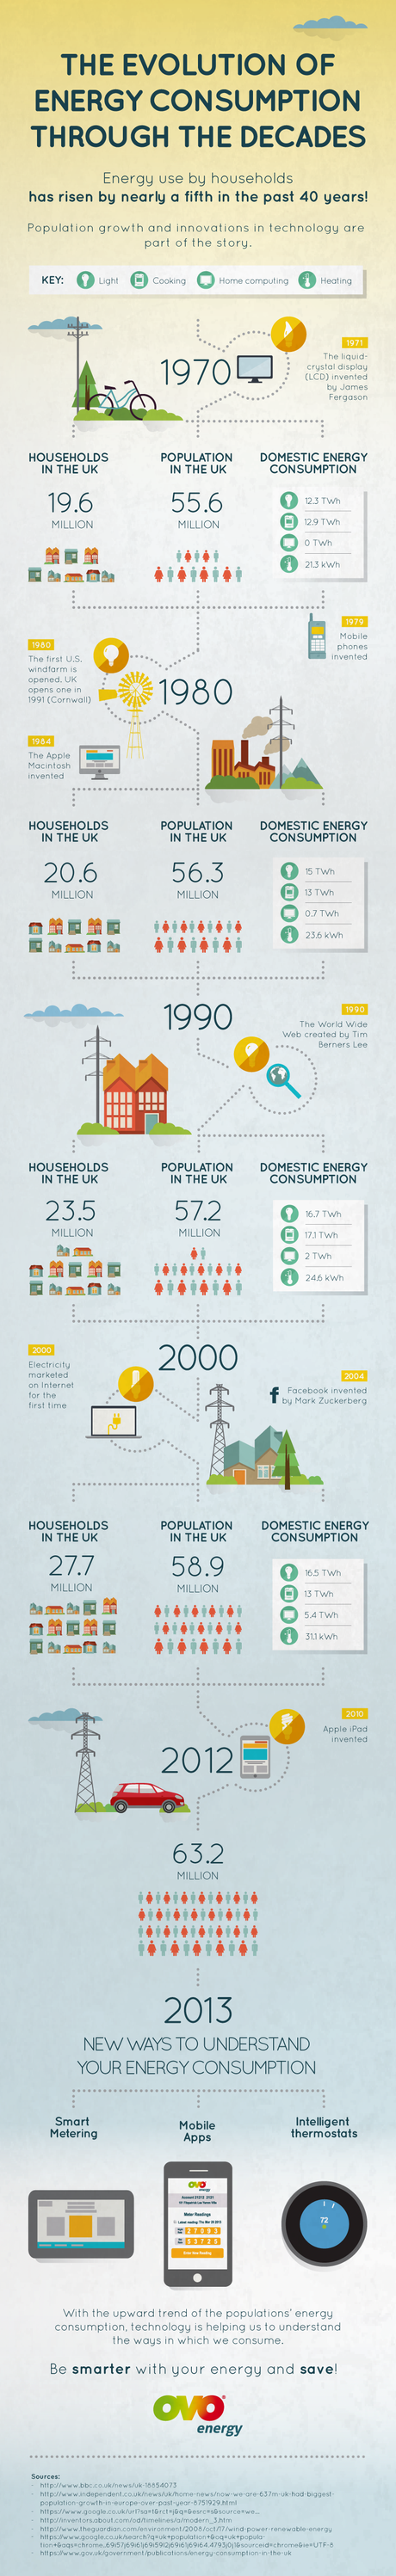 The evolution of energy consumption through the decades